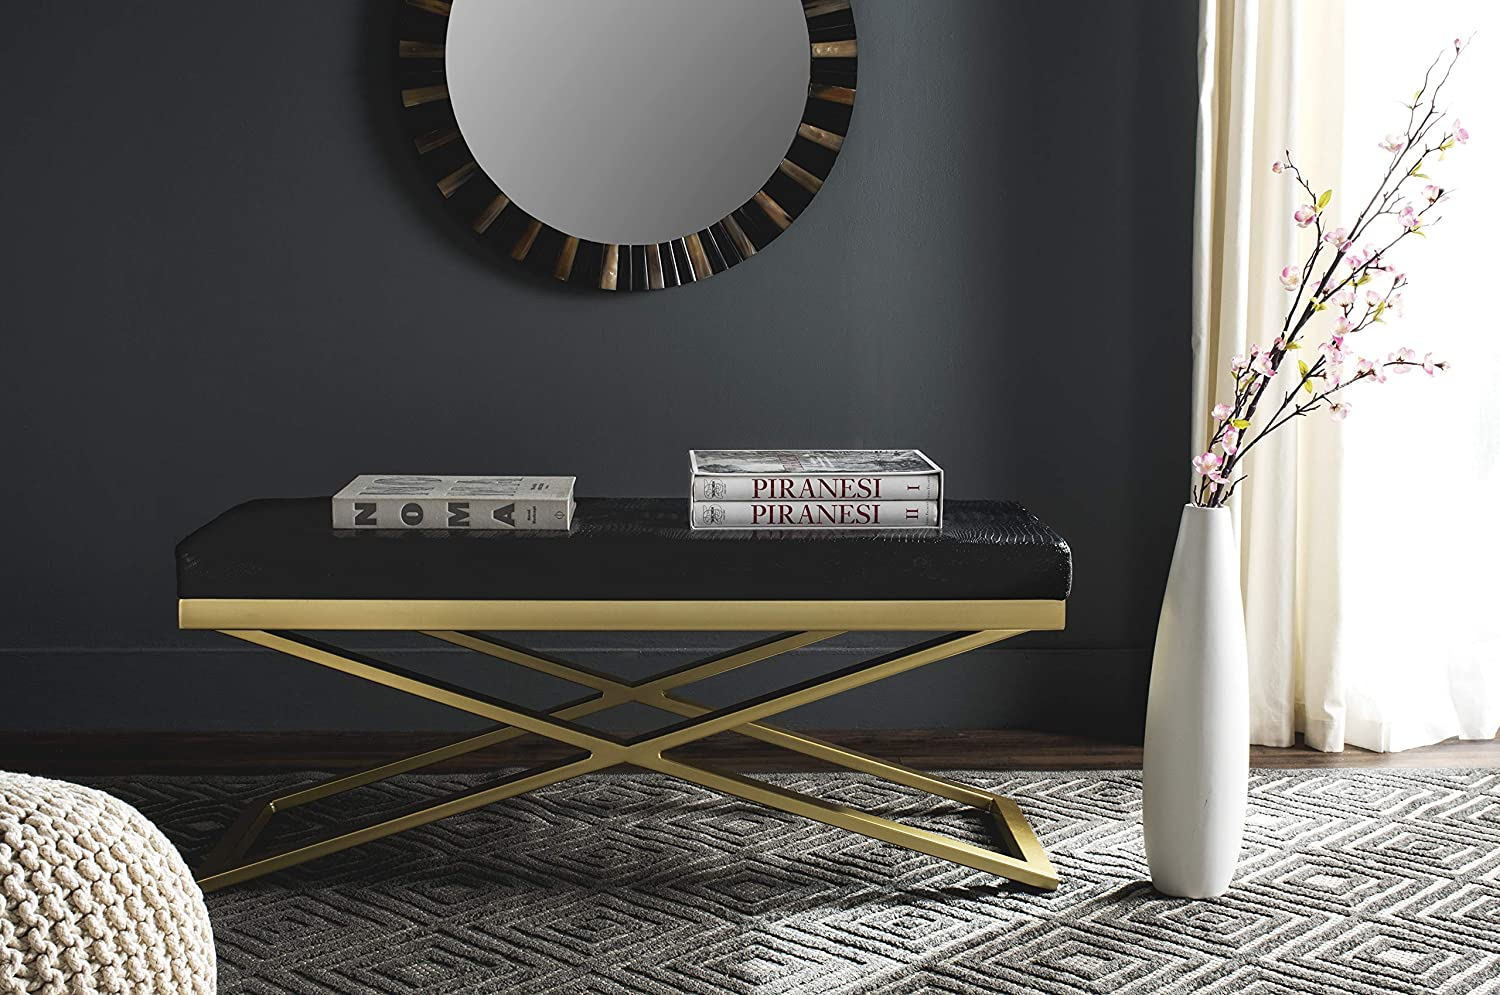 Safavieh Home Collection Acra Max 78% OFF Columbus Mall Modern Glam Gold Black Be Croc and